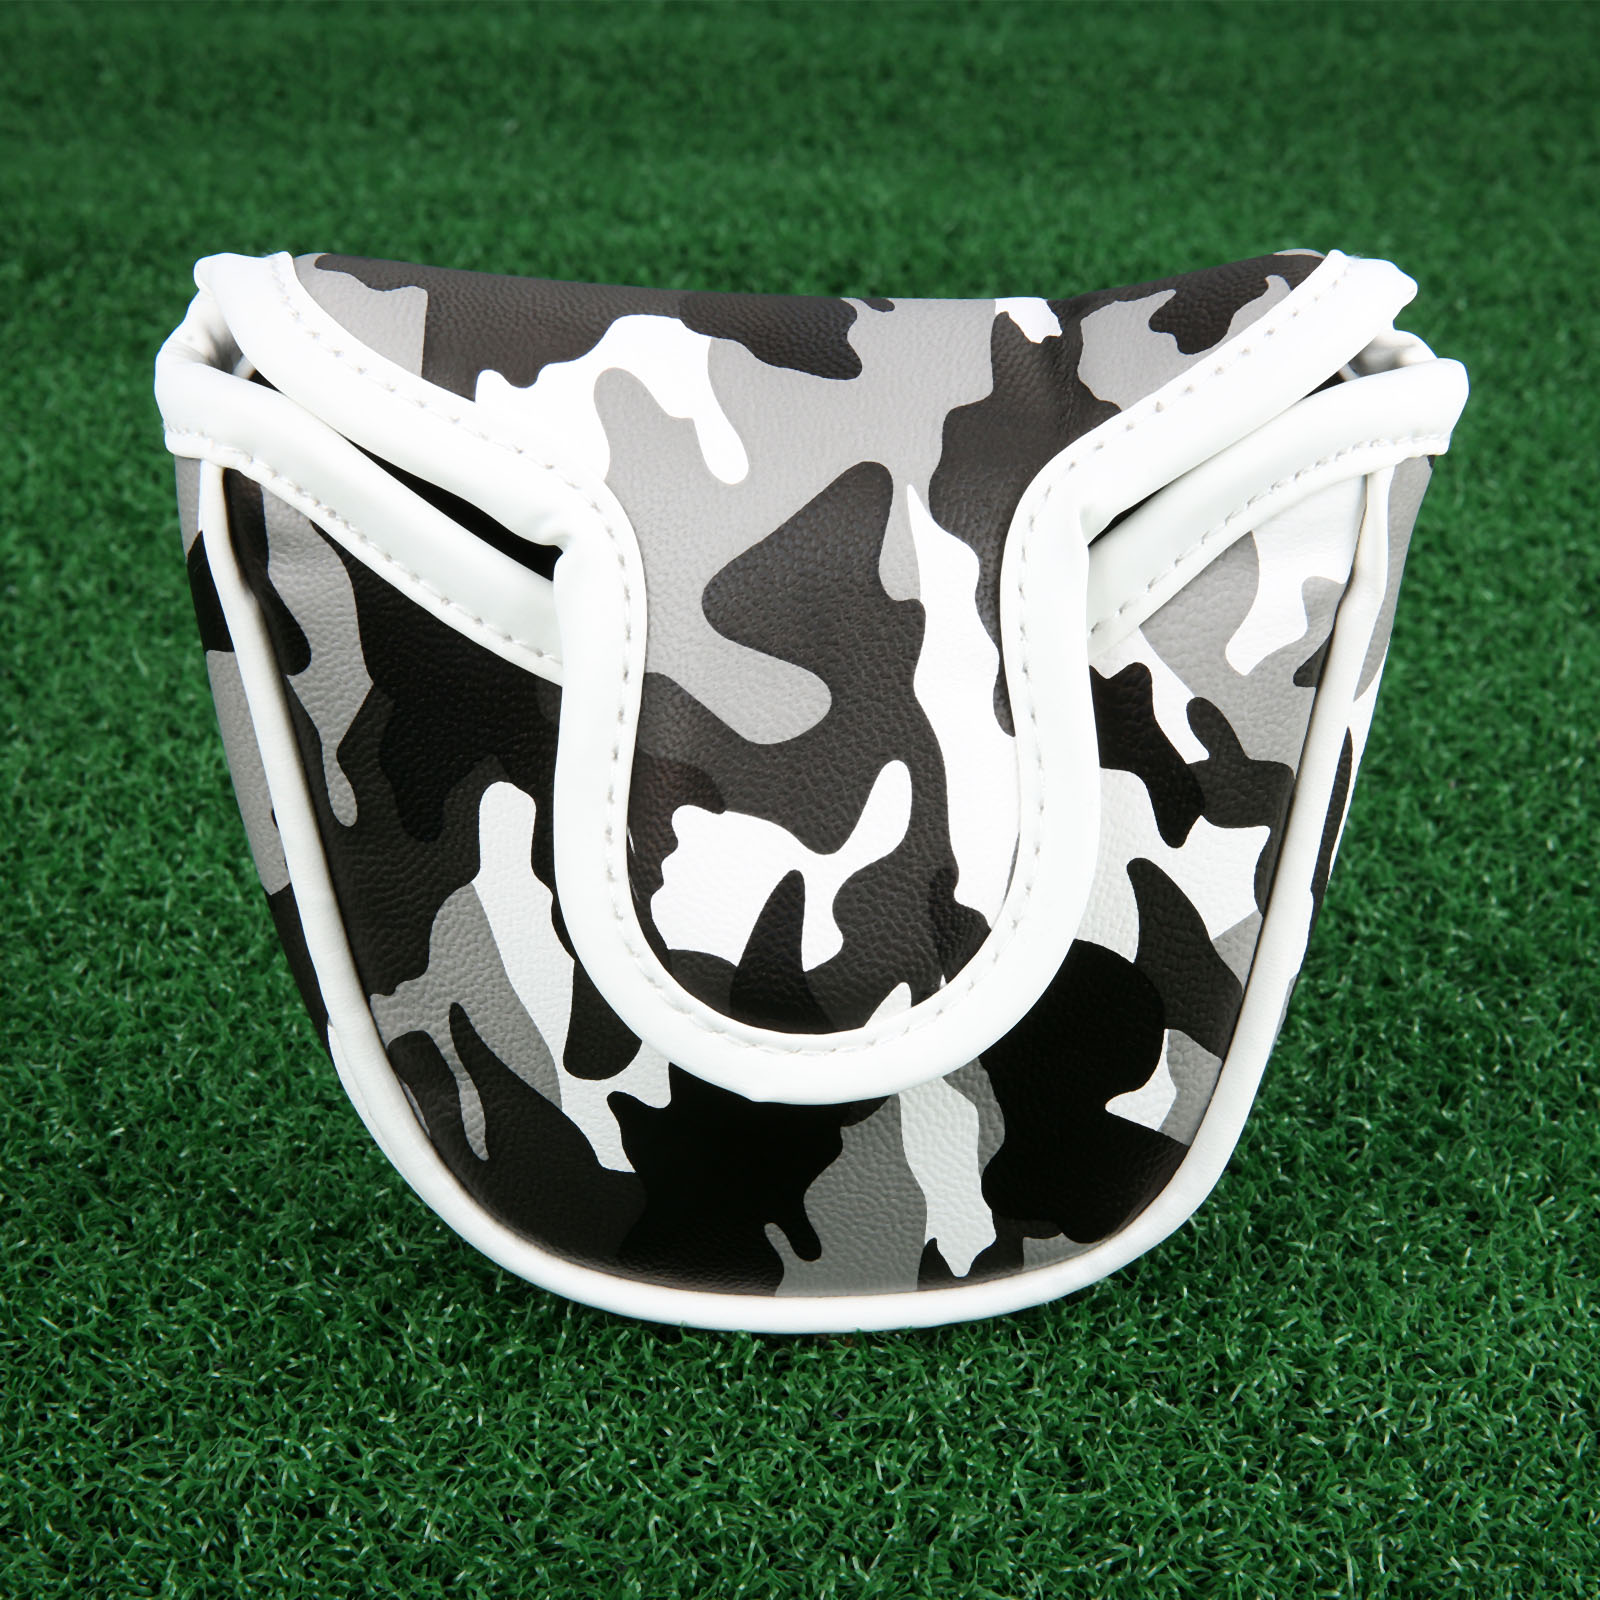 1Pc Golf Putter Putting Headcover Magnetic Buckle Mallet Putter Cover Bag PU Leather Camouflage Pattern Golf Club Heads Covers